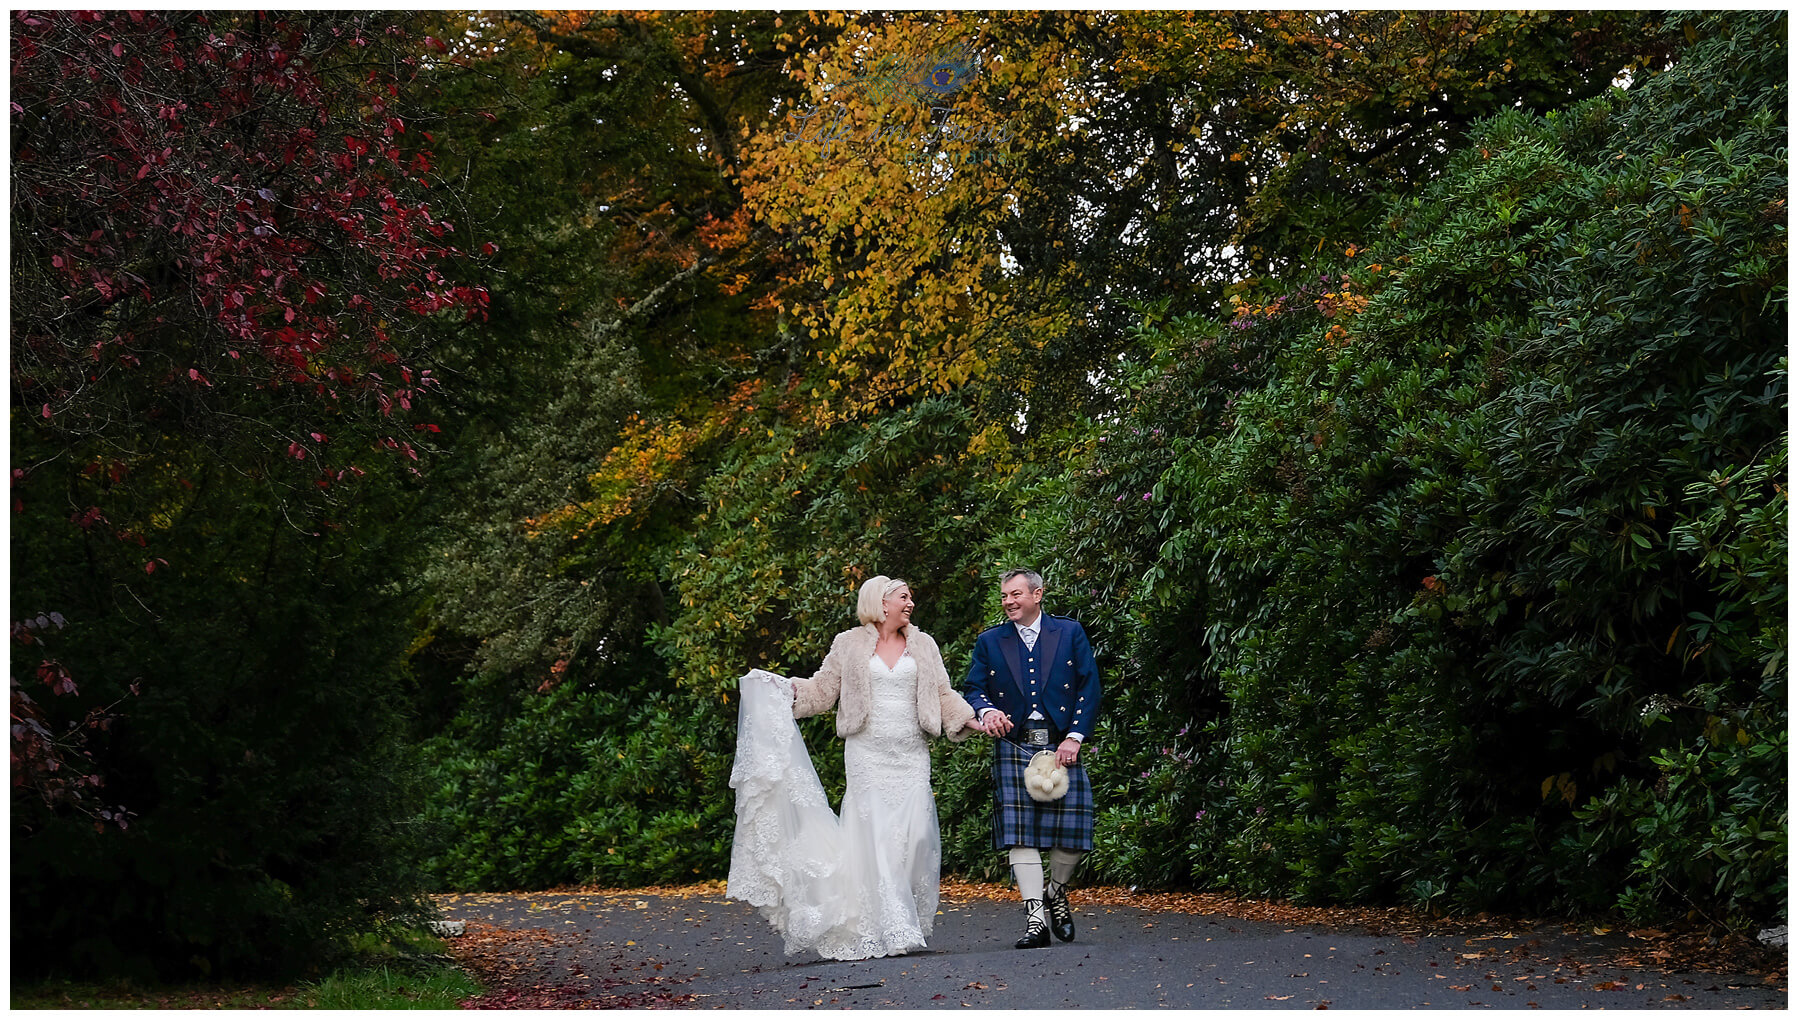 wedding photo Bride and Groom amidst Autumn colours secret micro Wedding Rhu Helensburgh